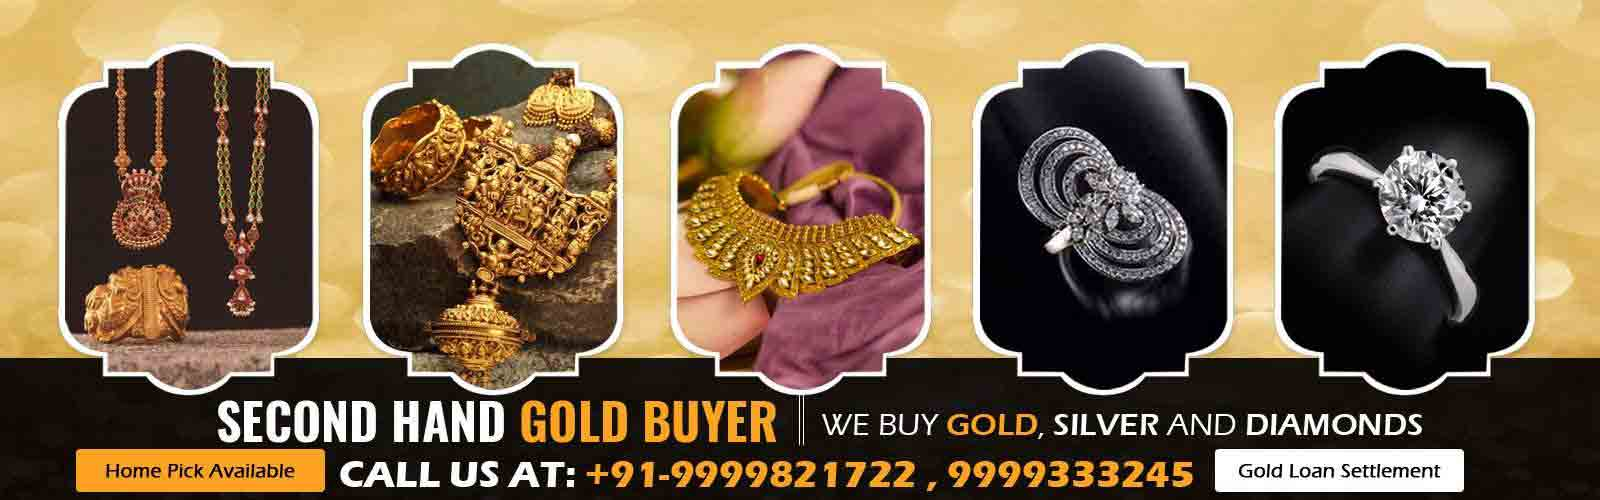 Cash for Gold | Gold Buyer Near Me in Gurgaon Delhi Noida